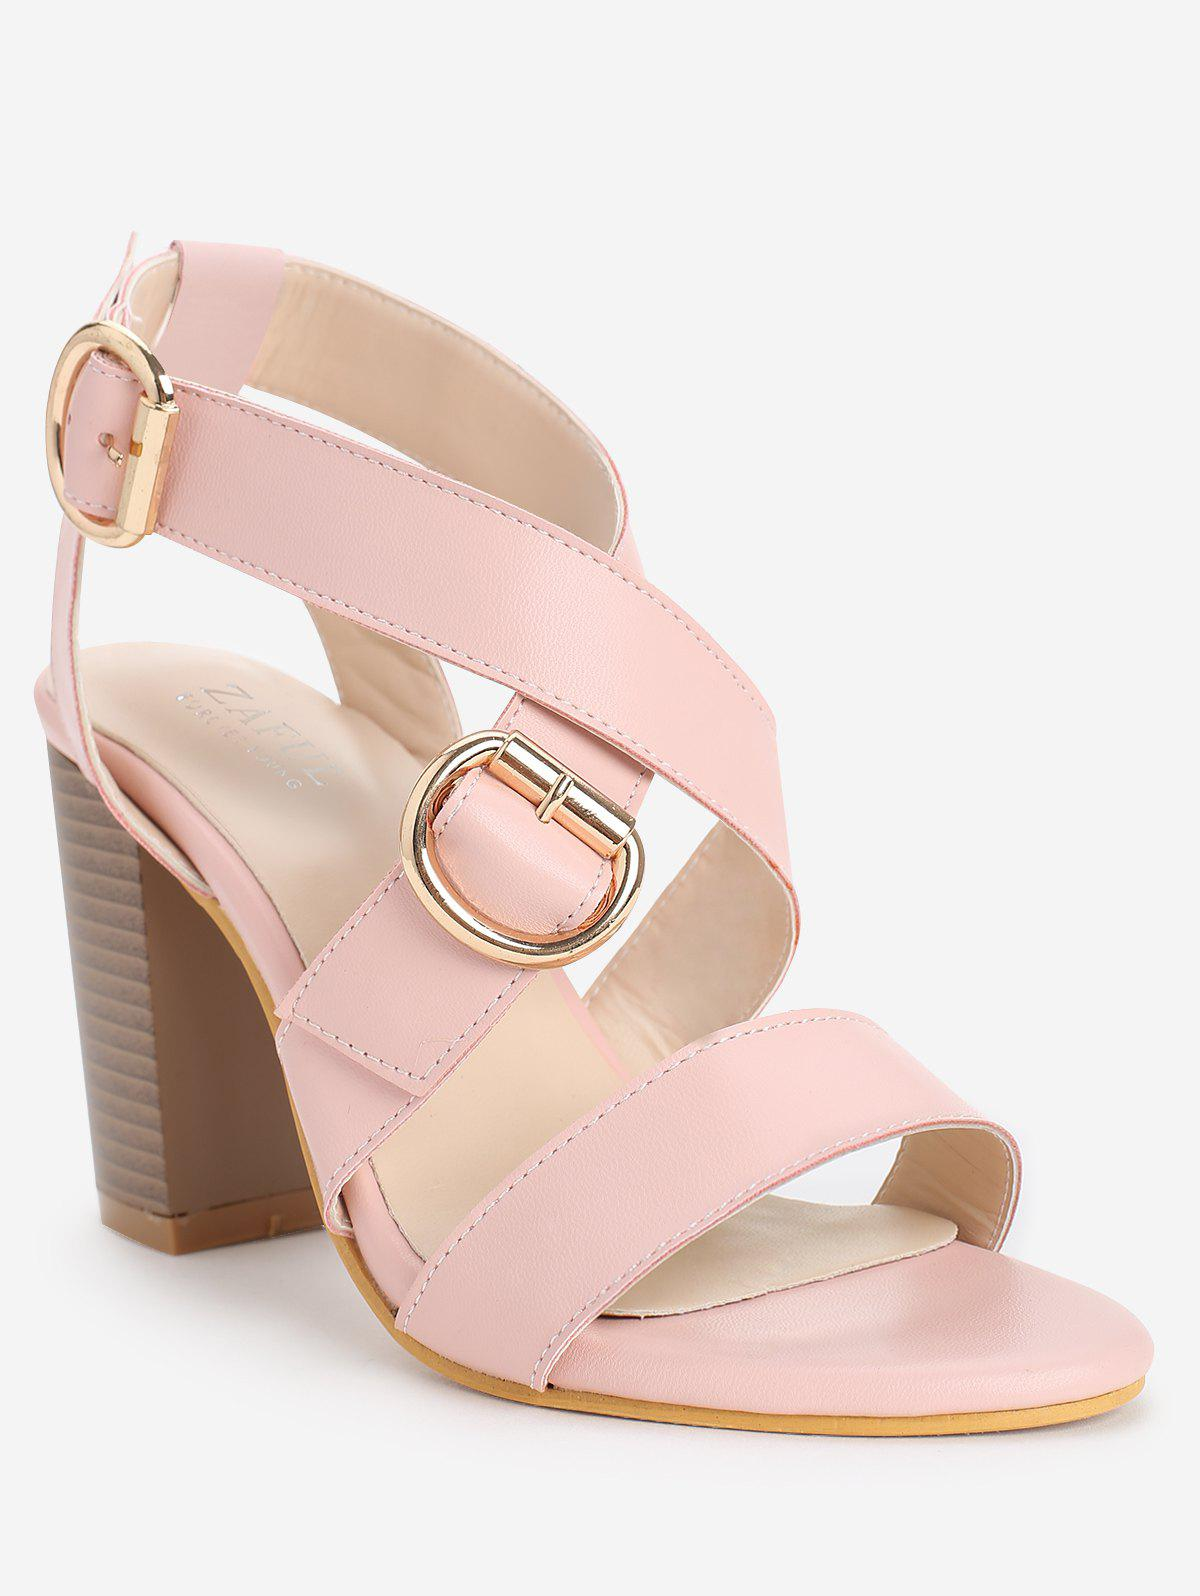 Fashion Retro High Heel Cross Strap Ankle Wrap Sandals